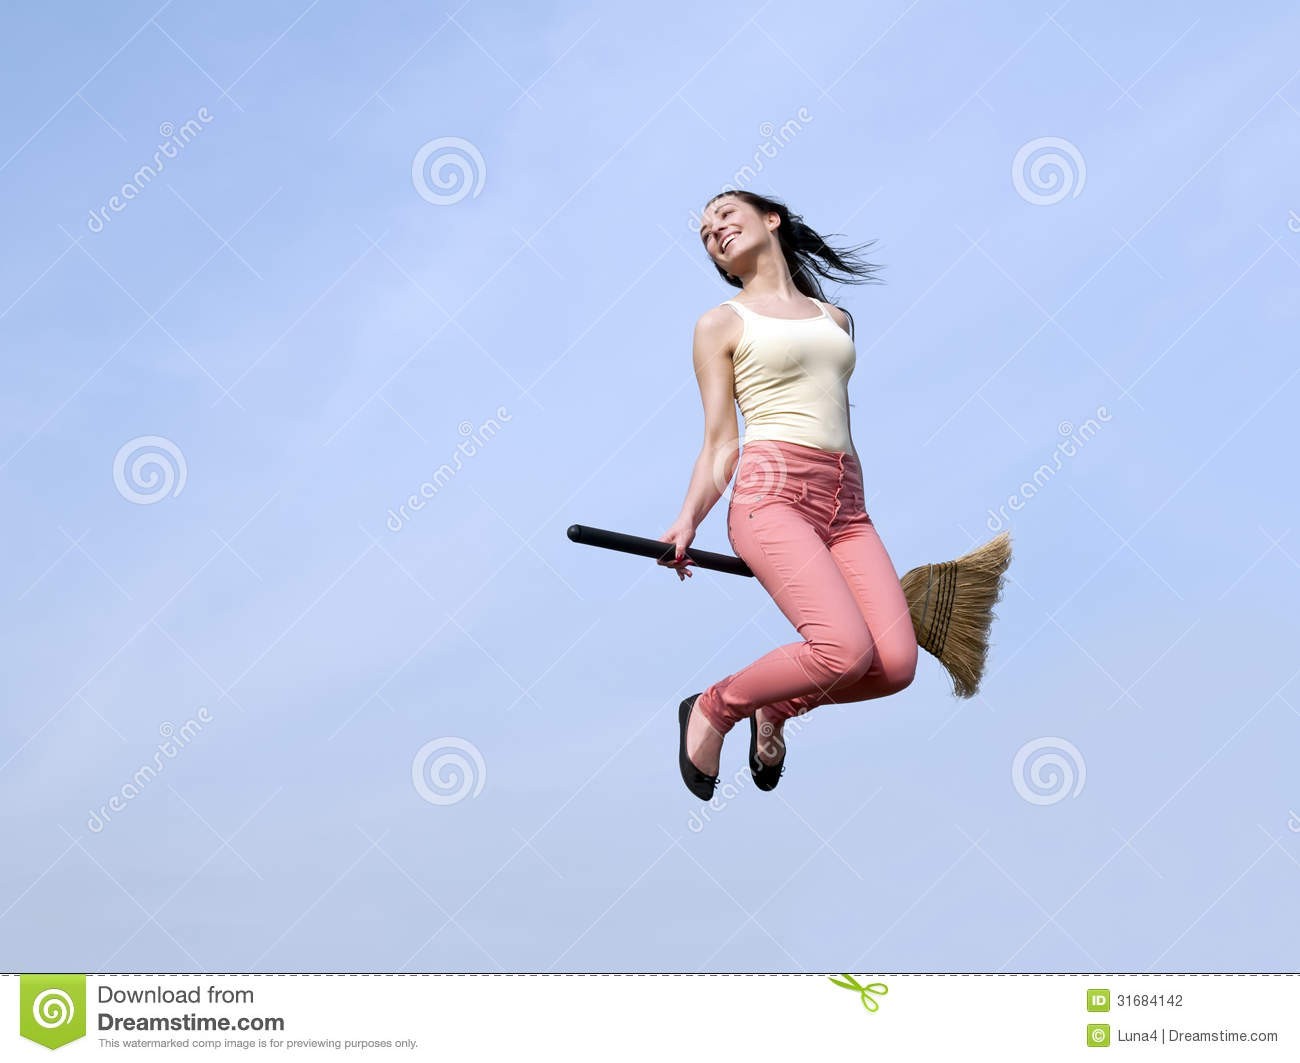 young woman riding broom